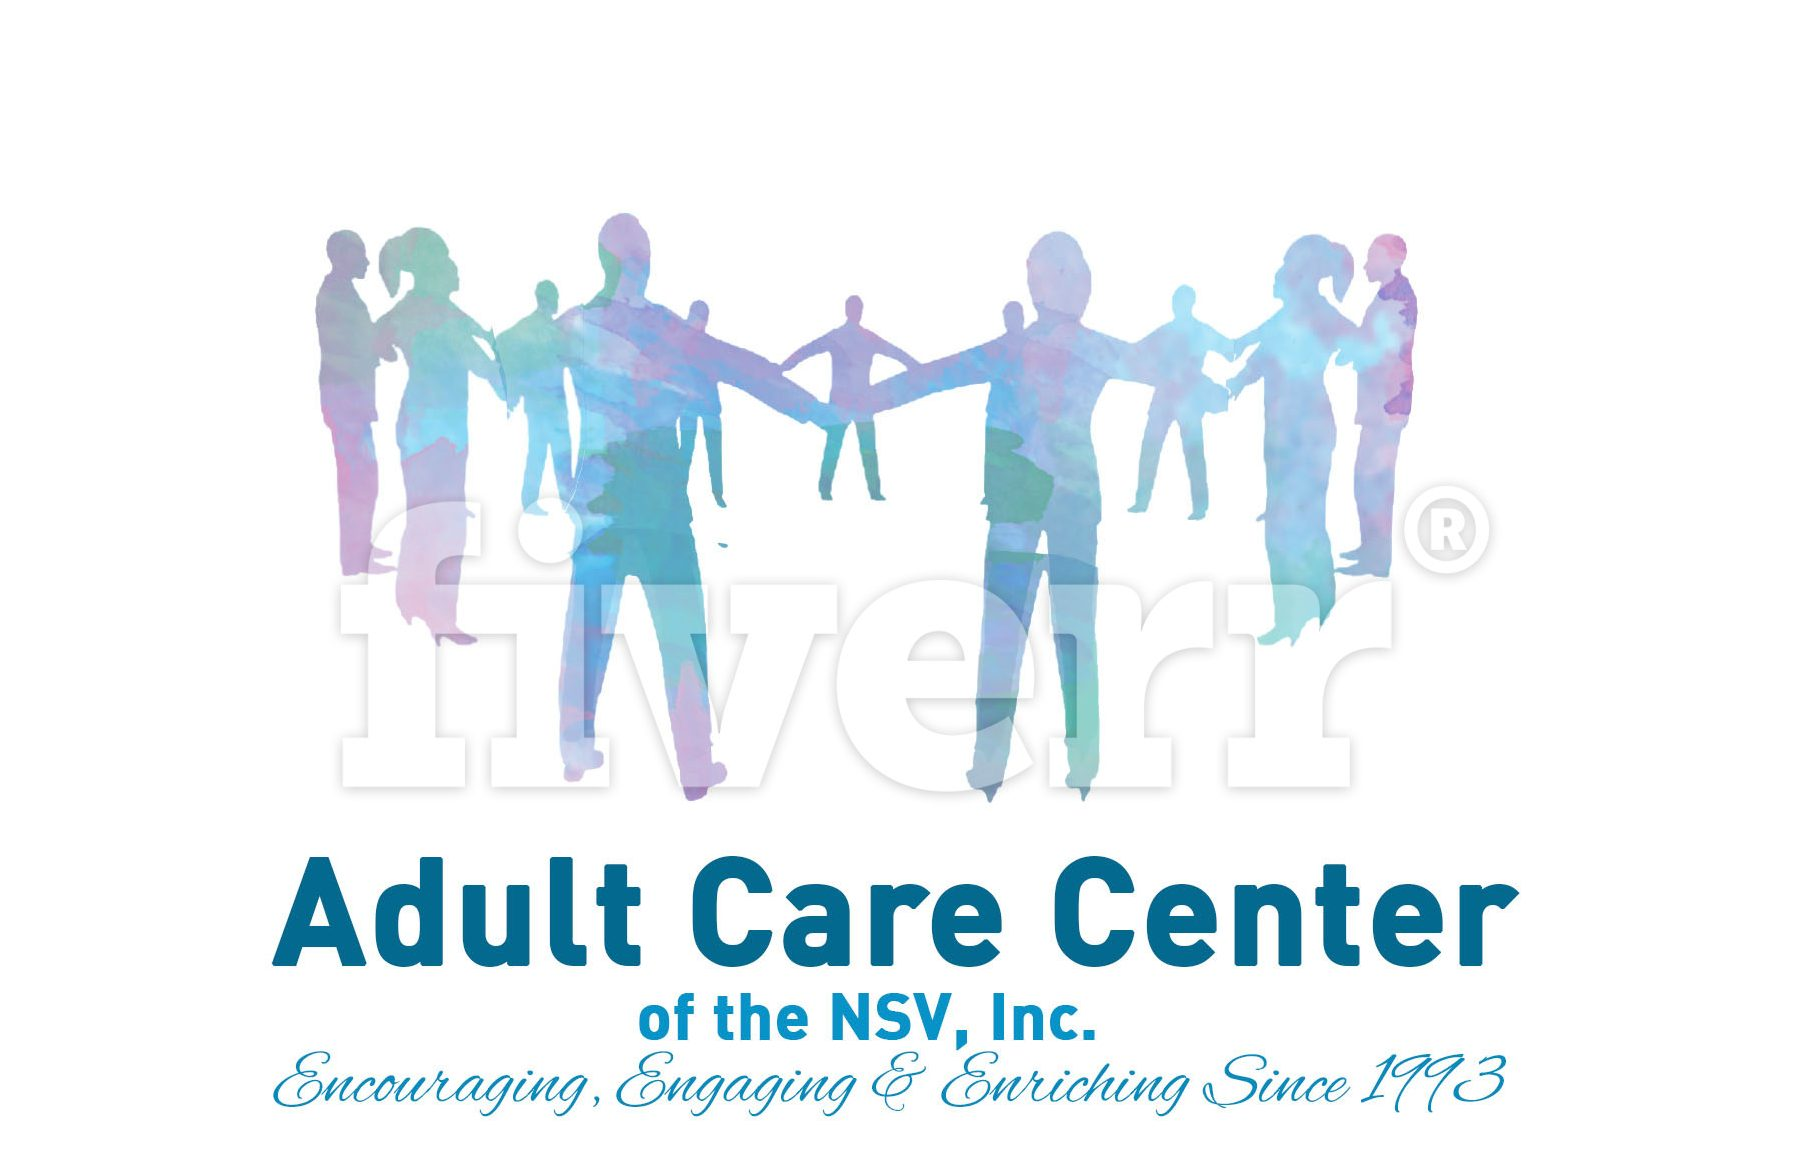 cropped-Adult_Care_Center7.jpg